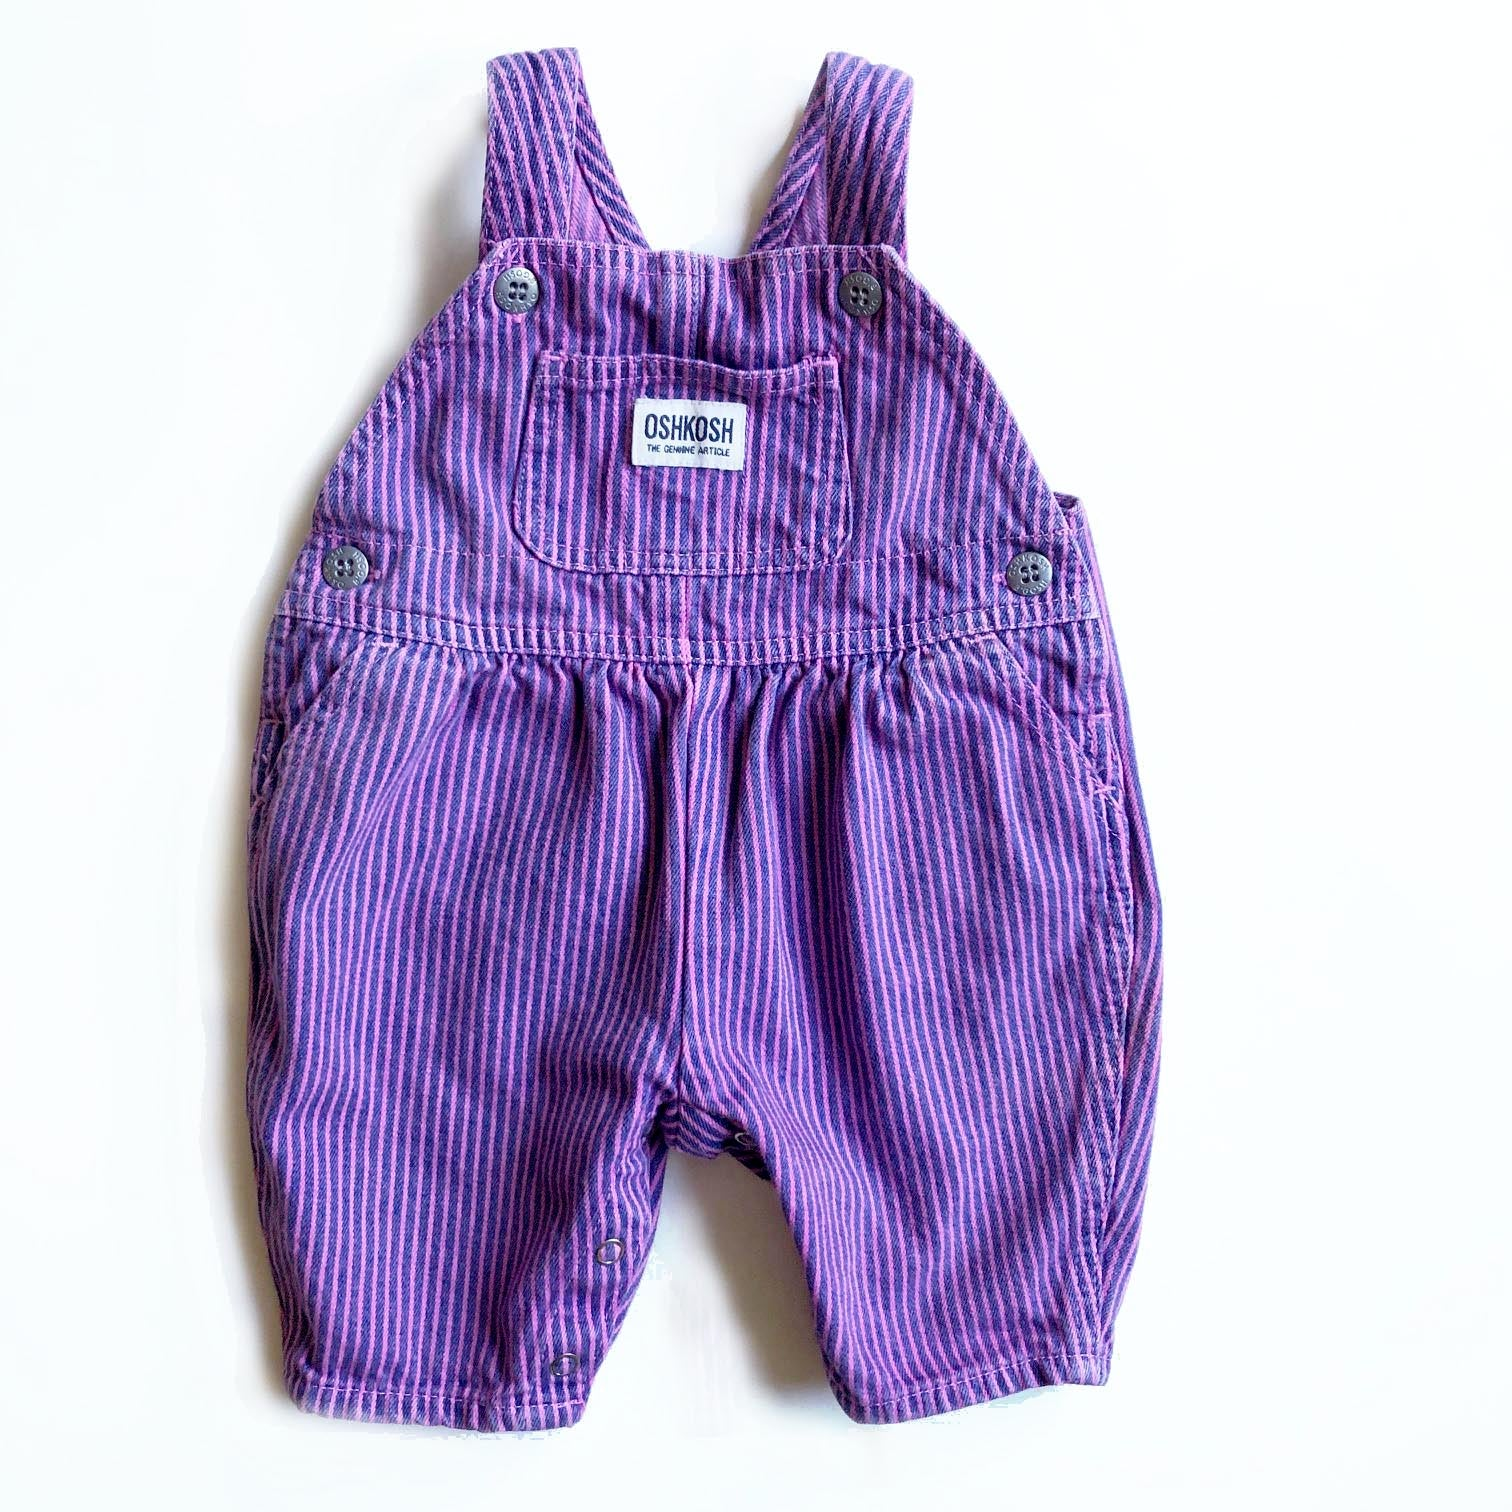 The cutest Vintage Osh Kosh Overalls Size 3-6 months